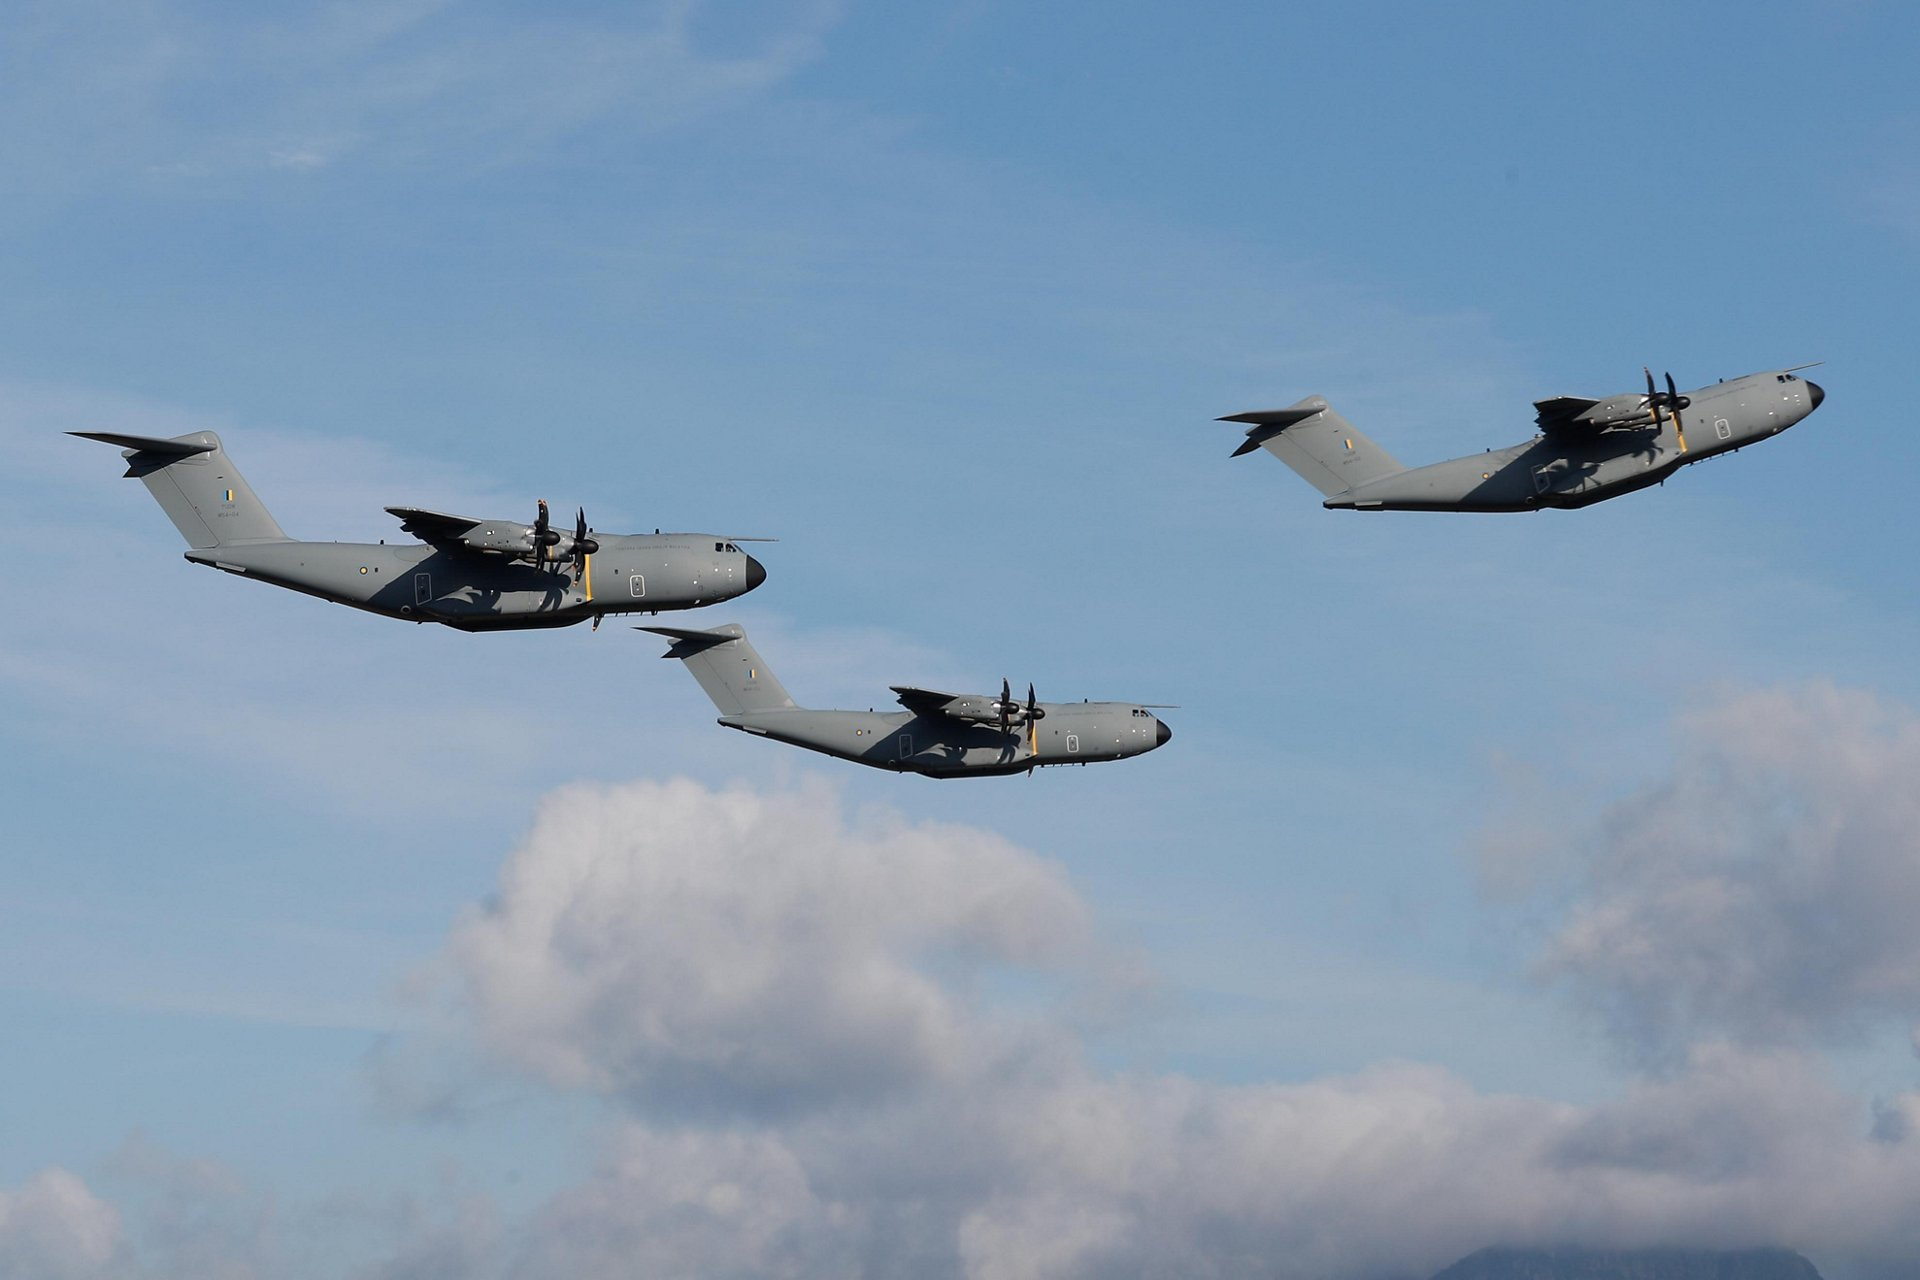 Royal Malaysian Air Force A400M formation flying